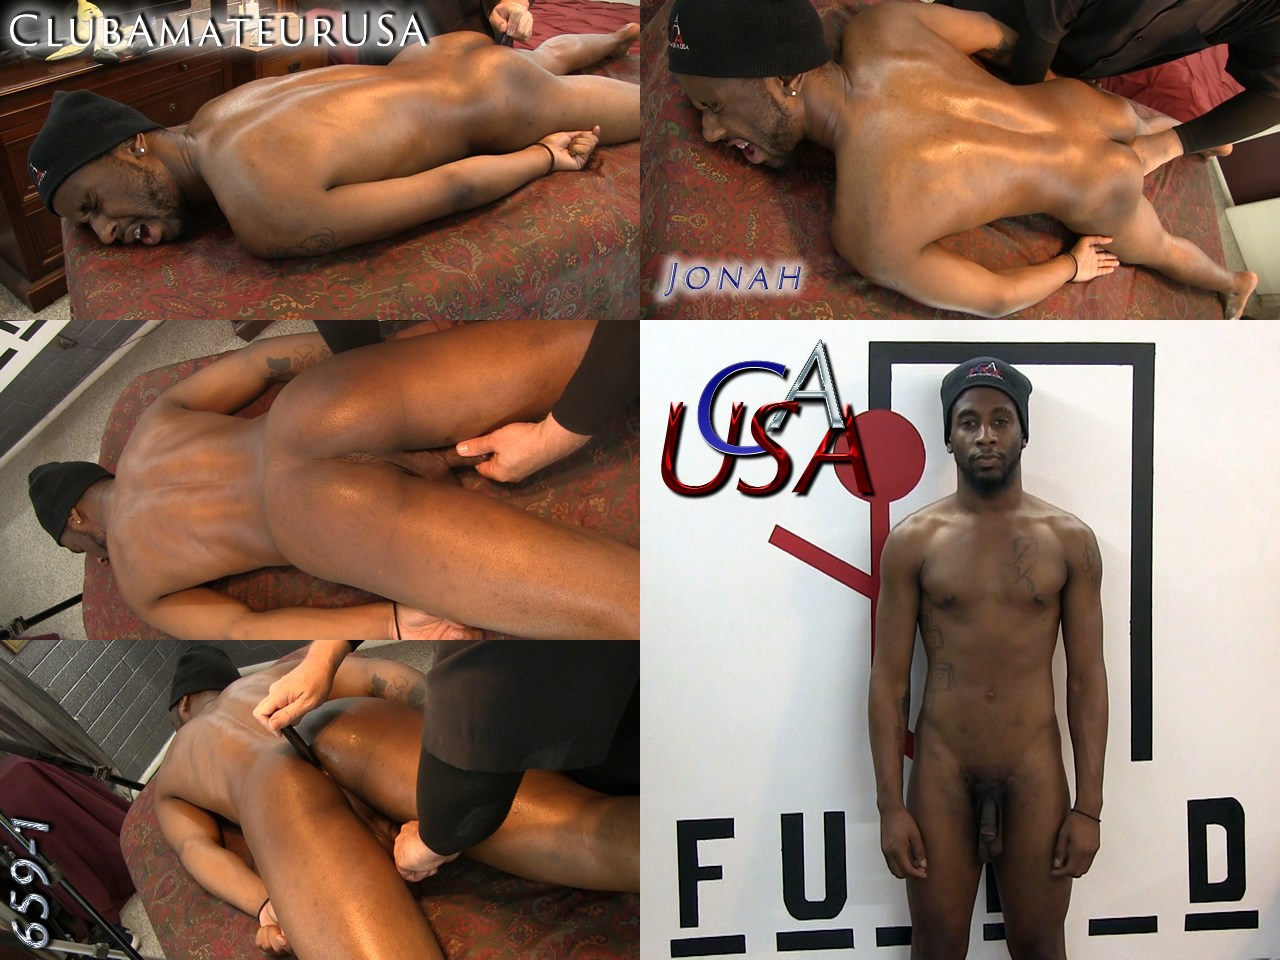 Download or Stream CAUSA 659 Jonah - 1 of 2 - Click Here Now